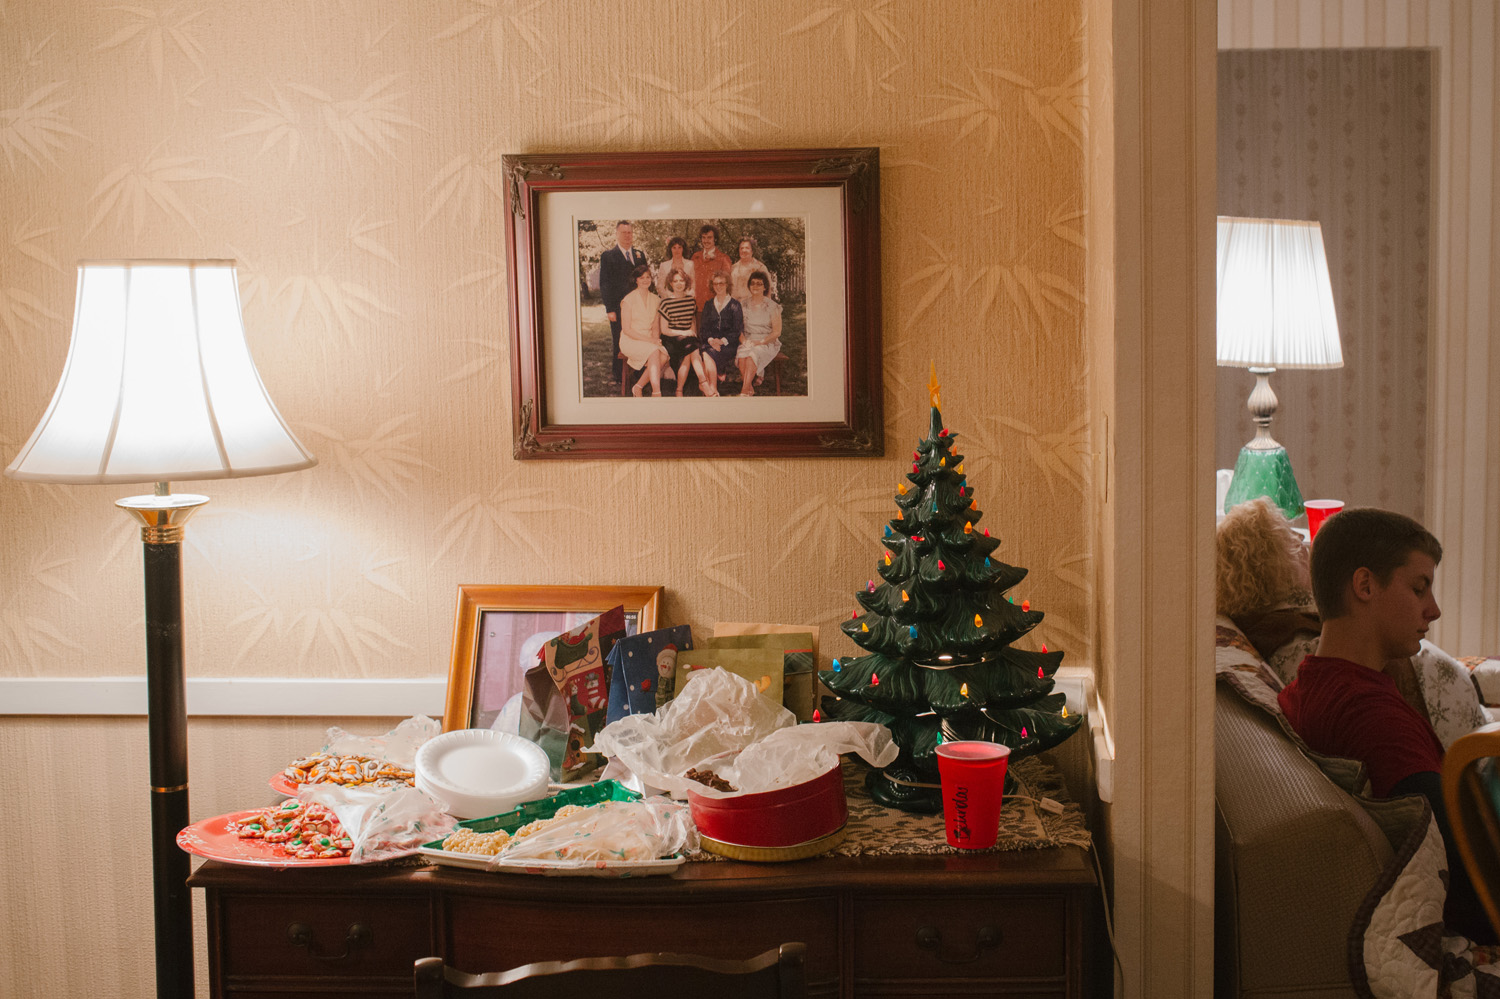 Grandma's house on Christmas Eve and the funeral on Dec. 26, 2014. (Photos by Brad Zweerink)